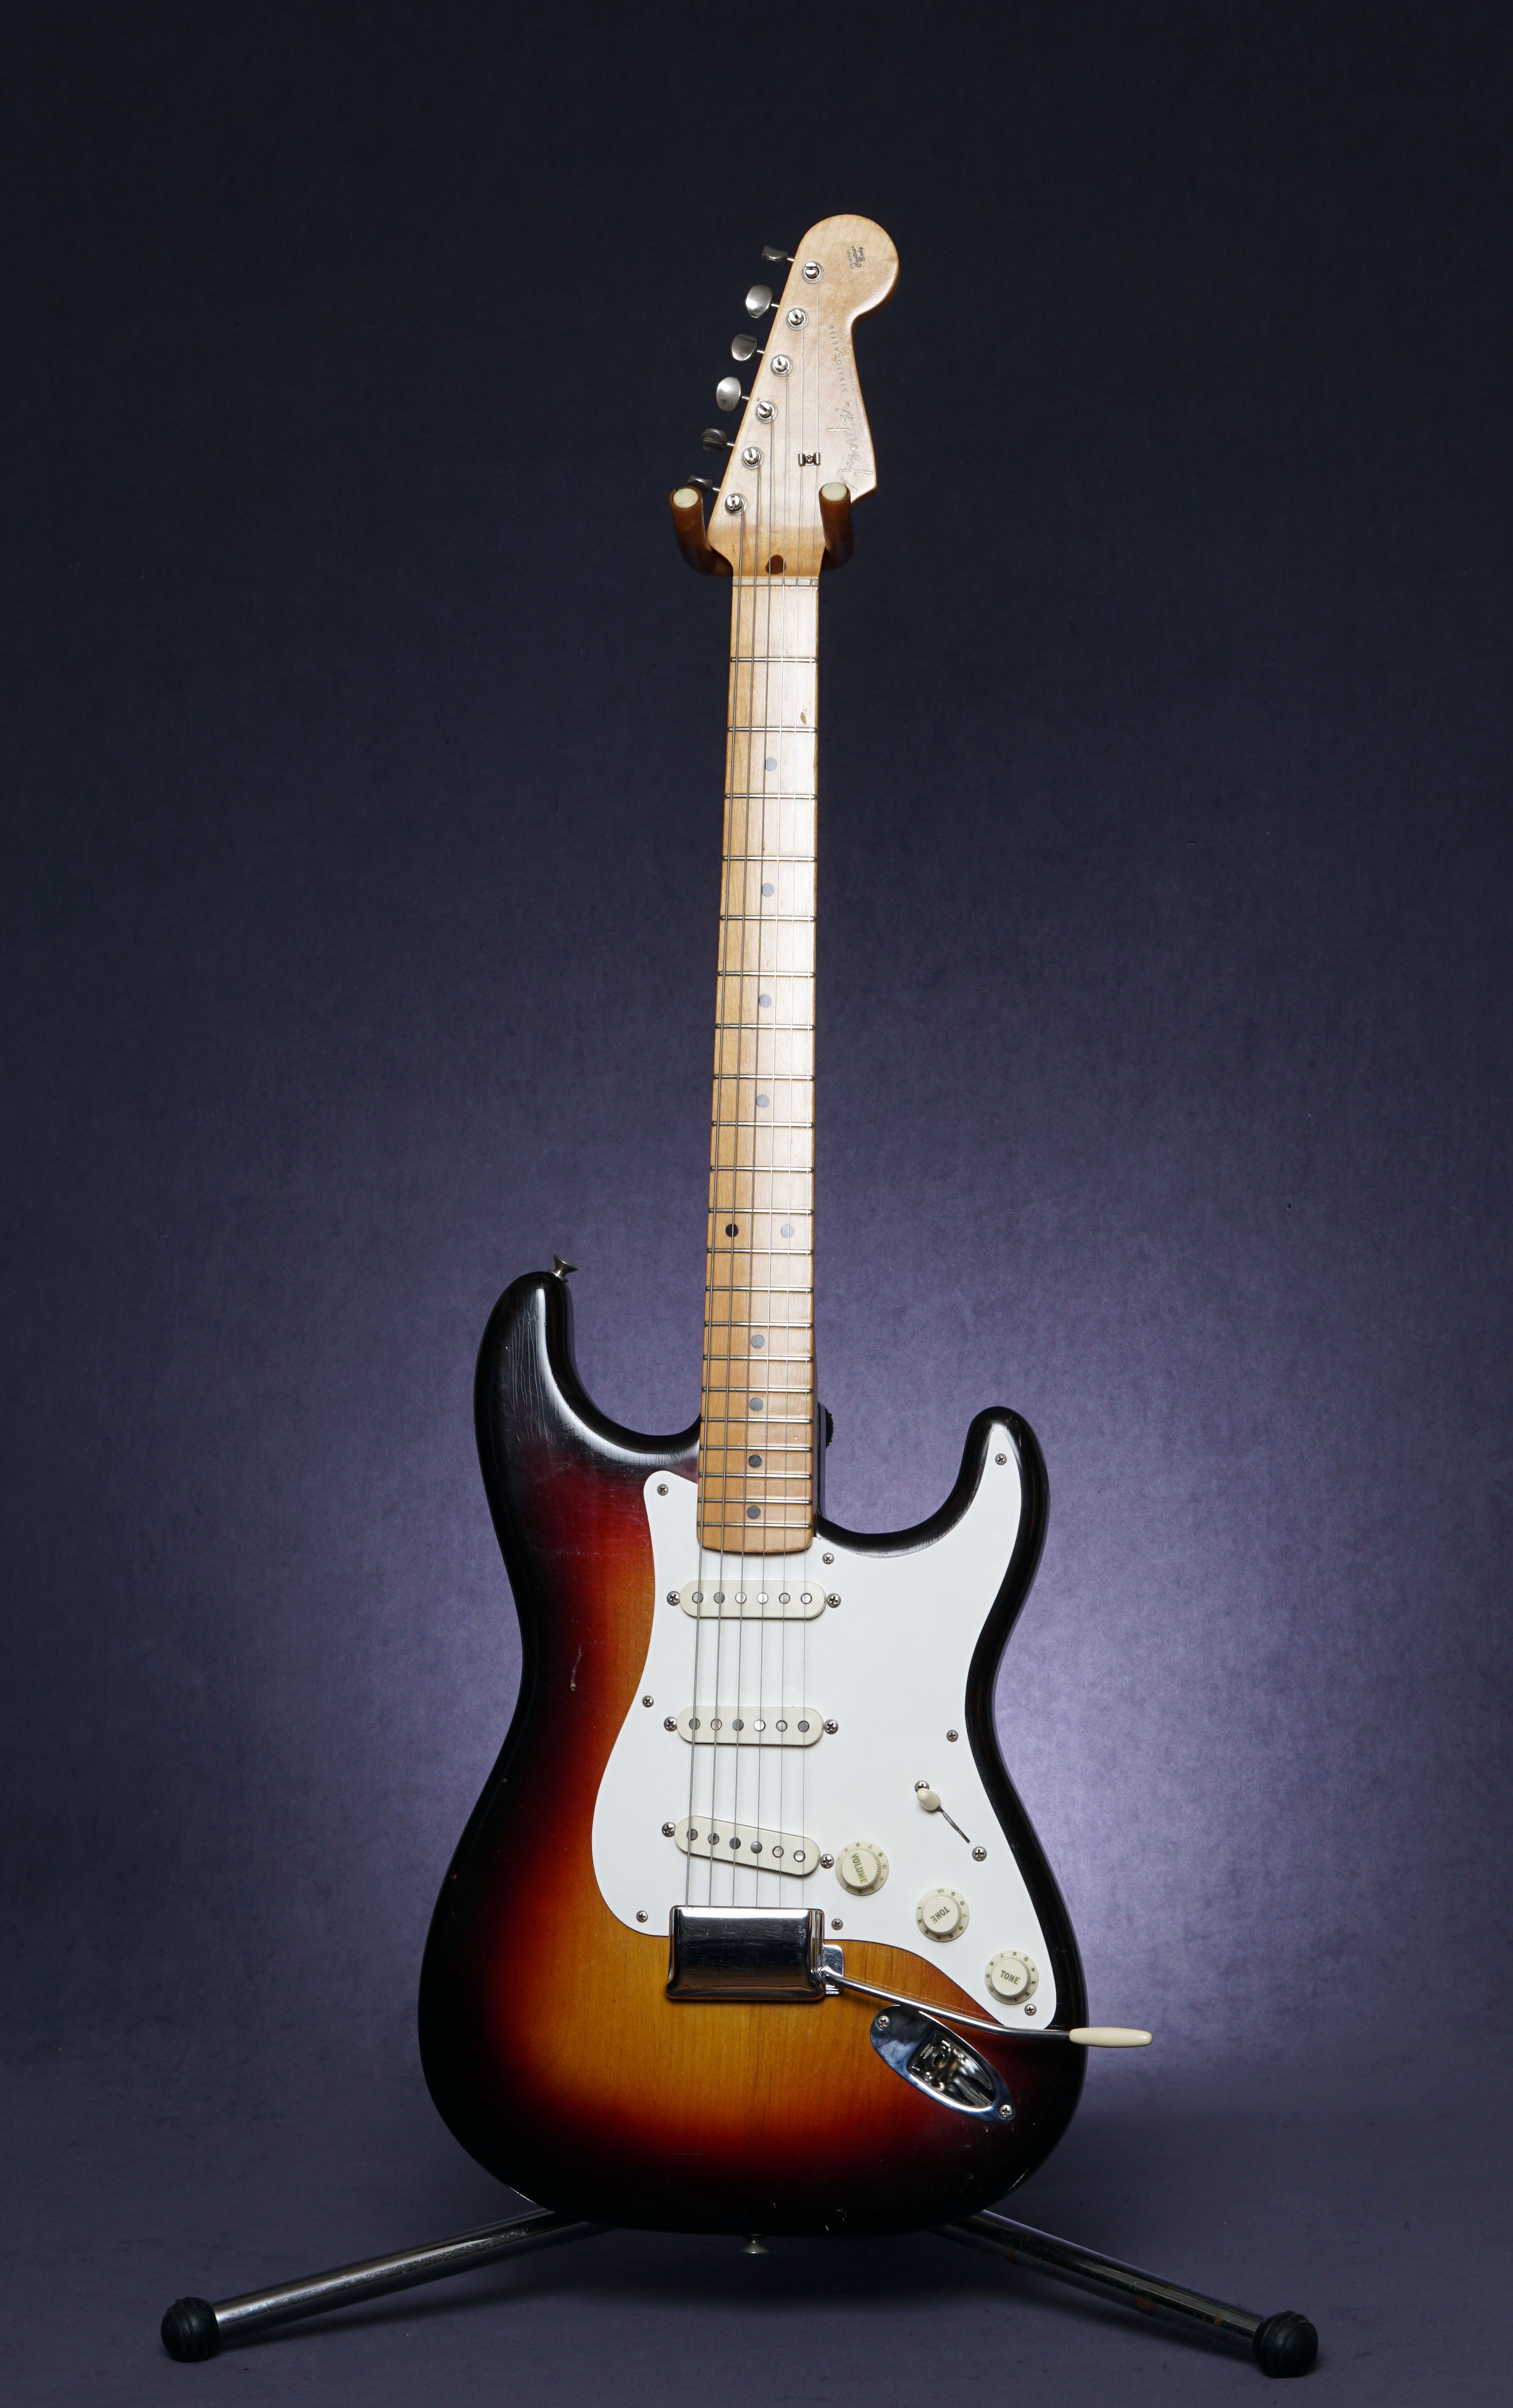 Fender Stratocaster - Wikipedia on